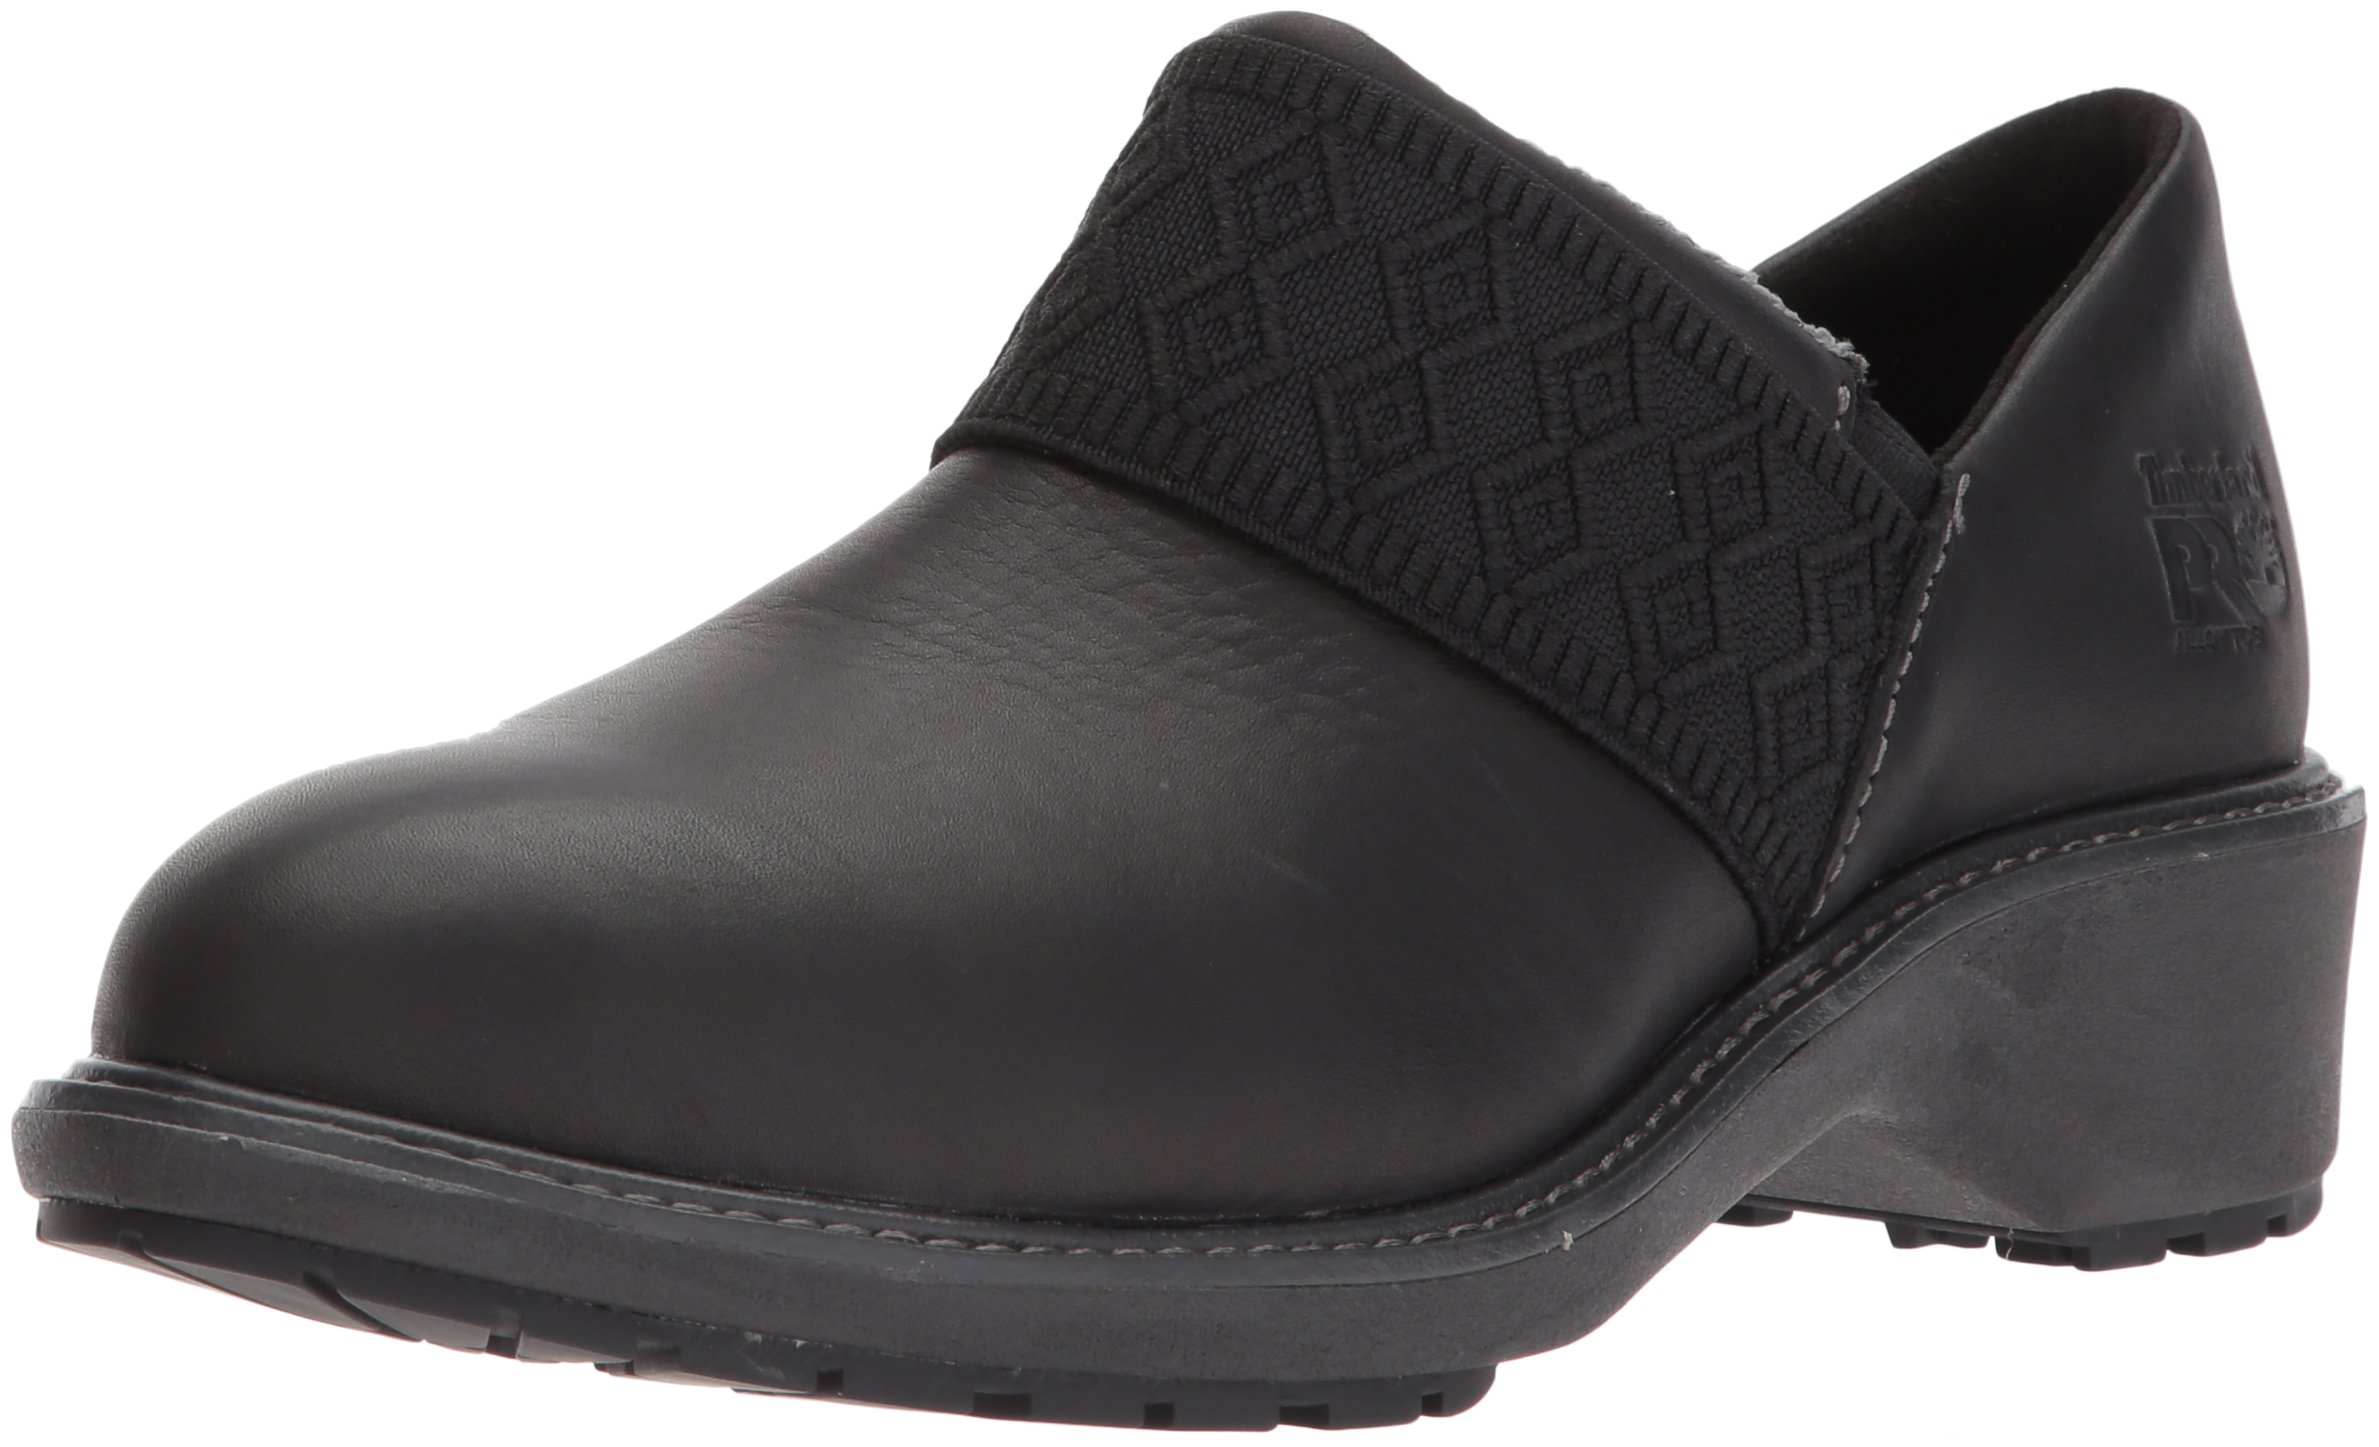 Timberland PRO Women's Riveter Alloy Toe SD+ Industrial and Construction Shoe, Black Swank Full Grain Leather, 7.5 M US